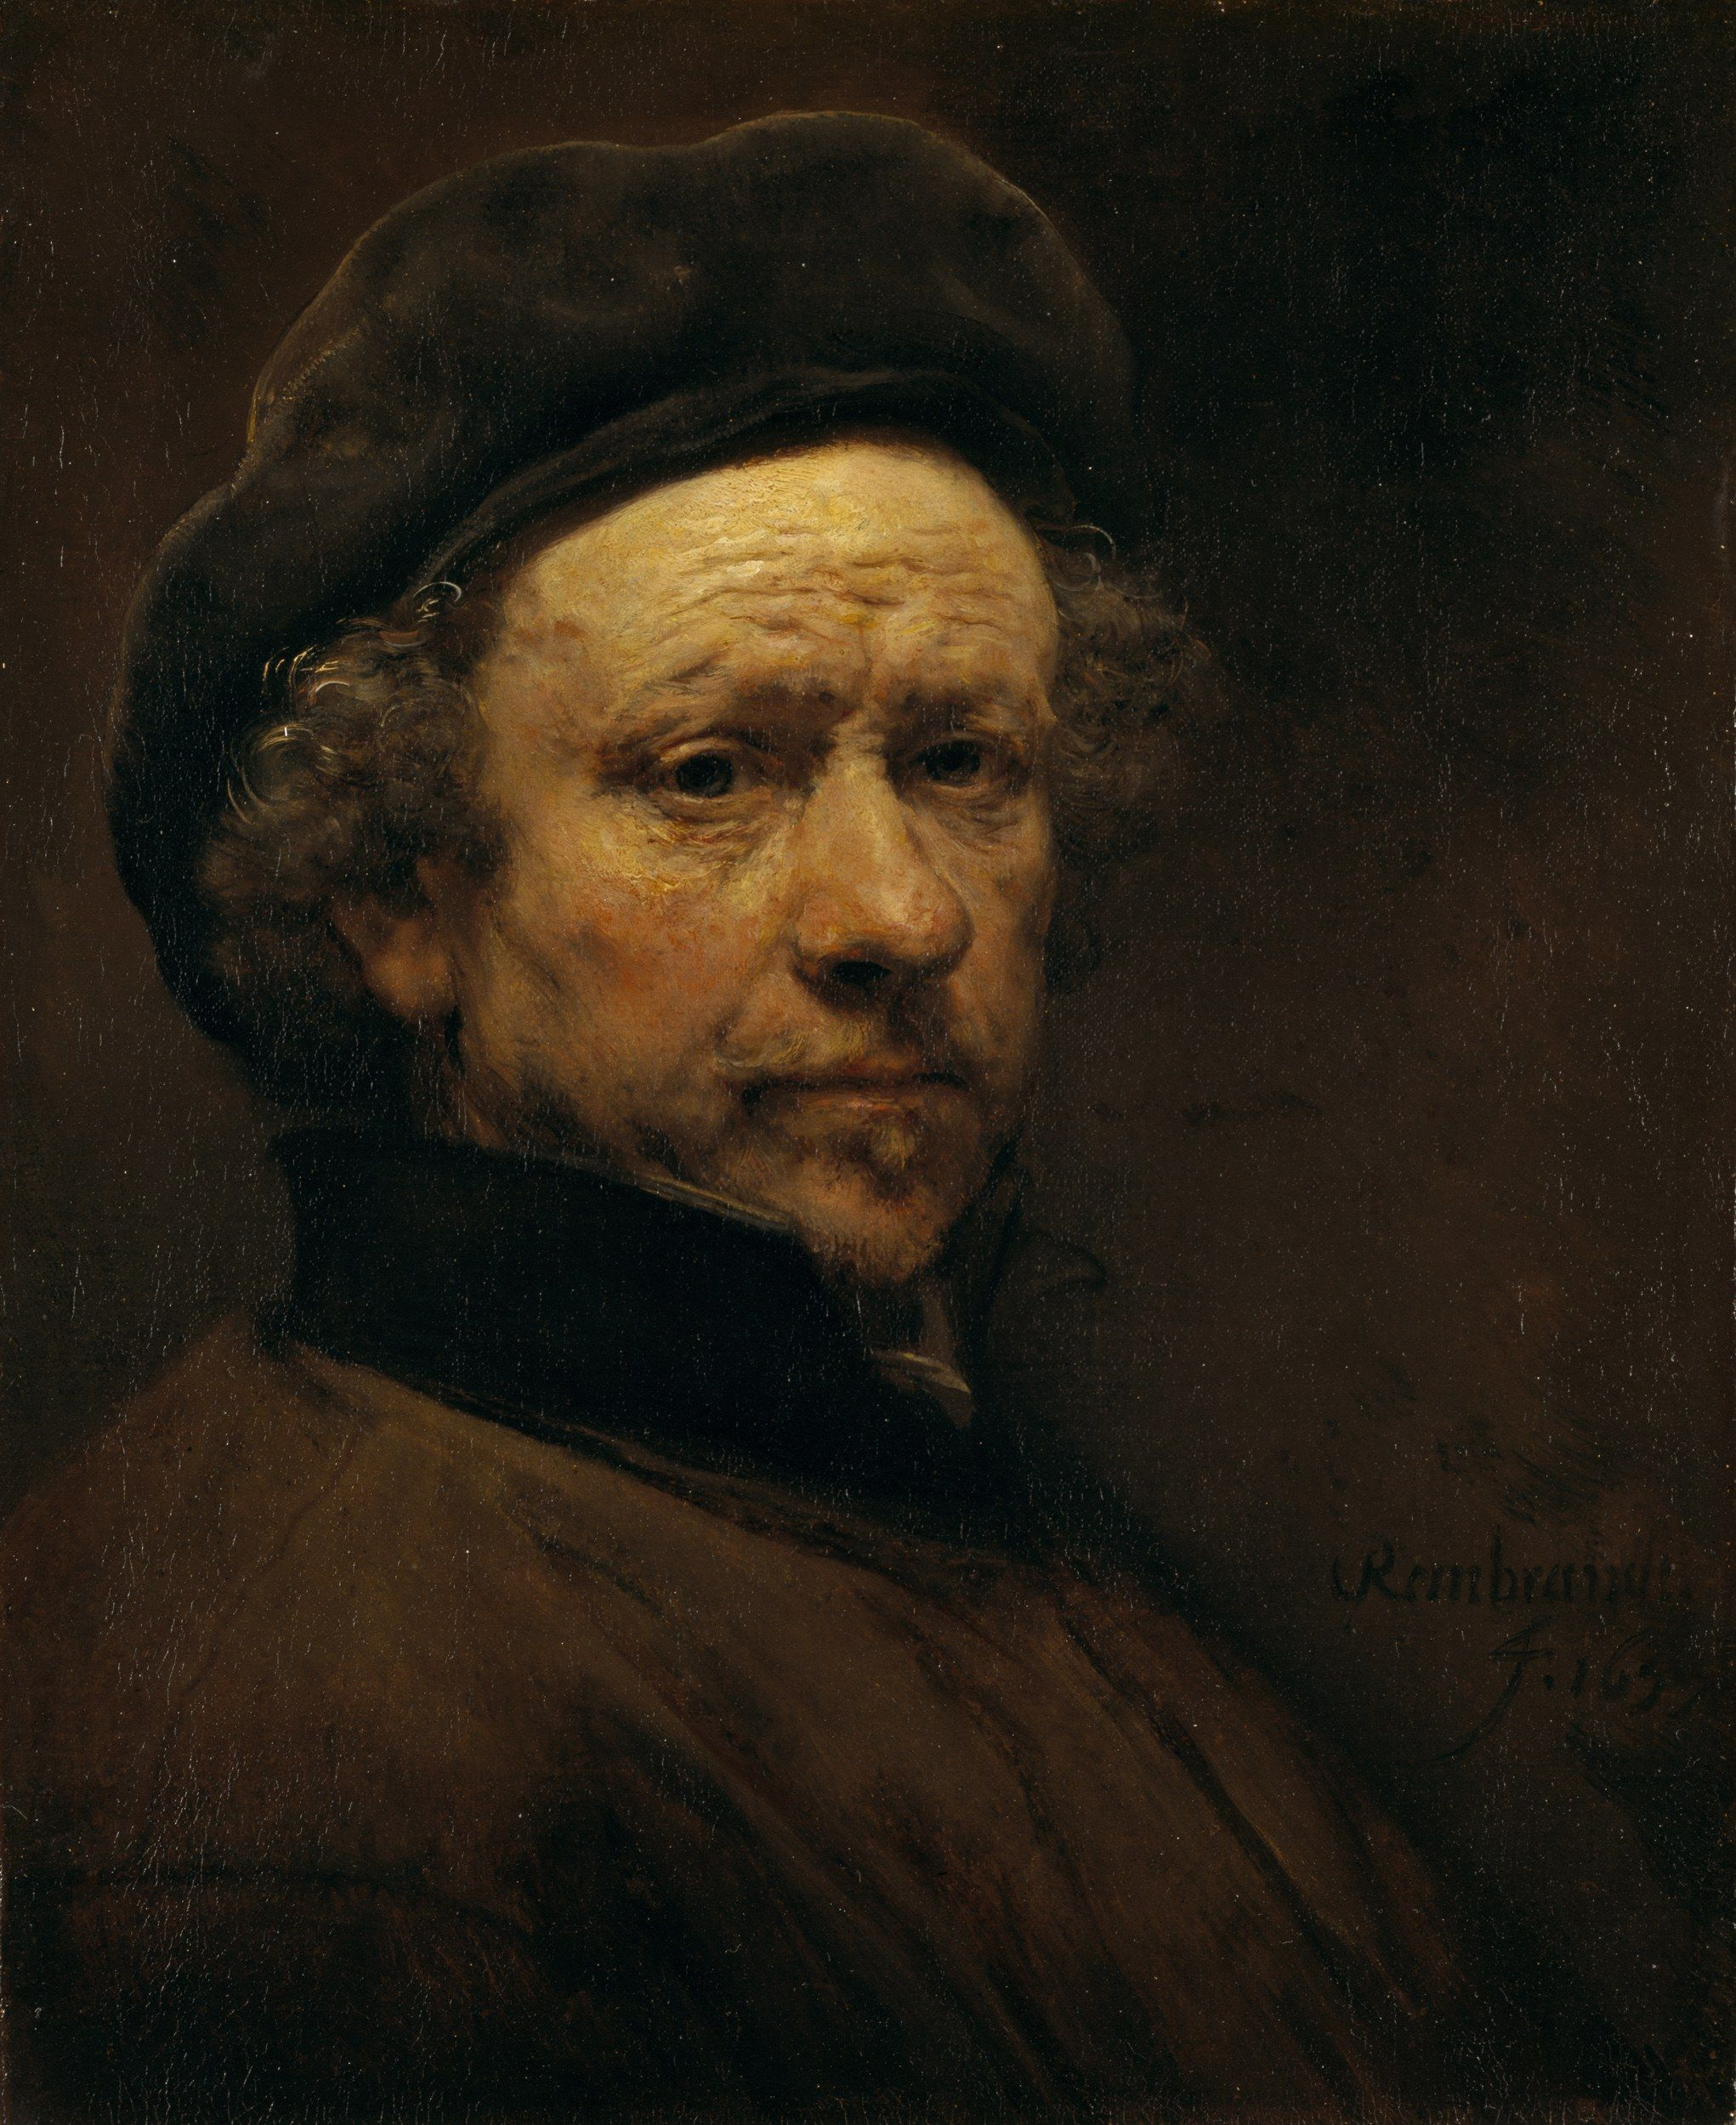 See Art Selfies Through The Centuries From Warhol To The 1500s At The Scottish Portrait Gallery Rembrandt Self Portrait Rembrandt Paintings Rembrandt Van Rijn